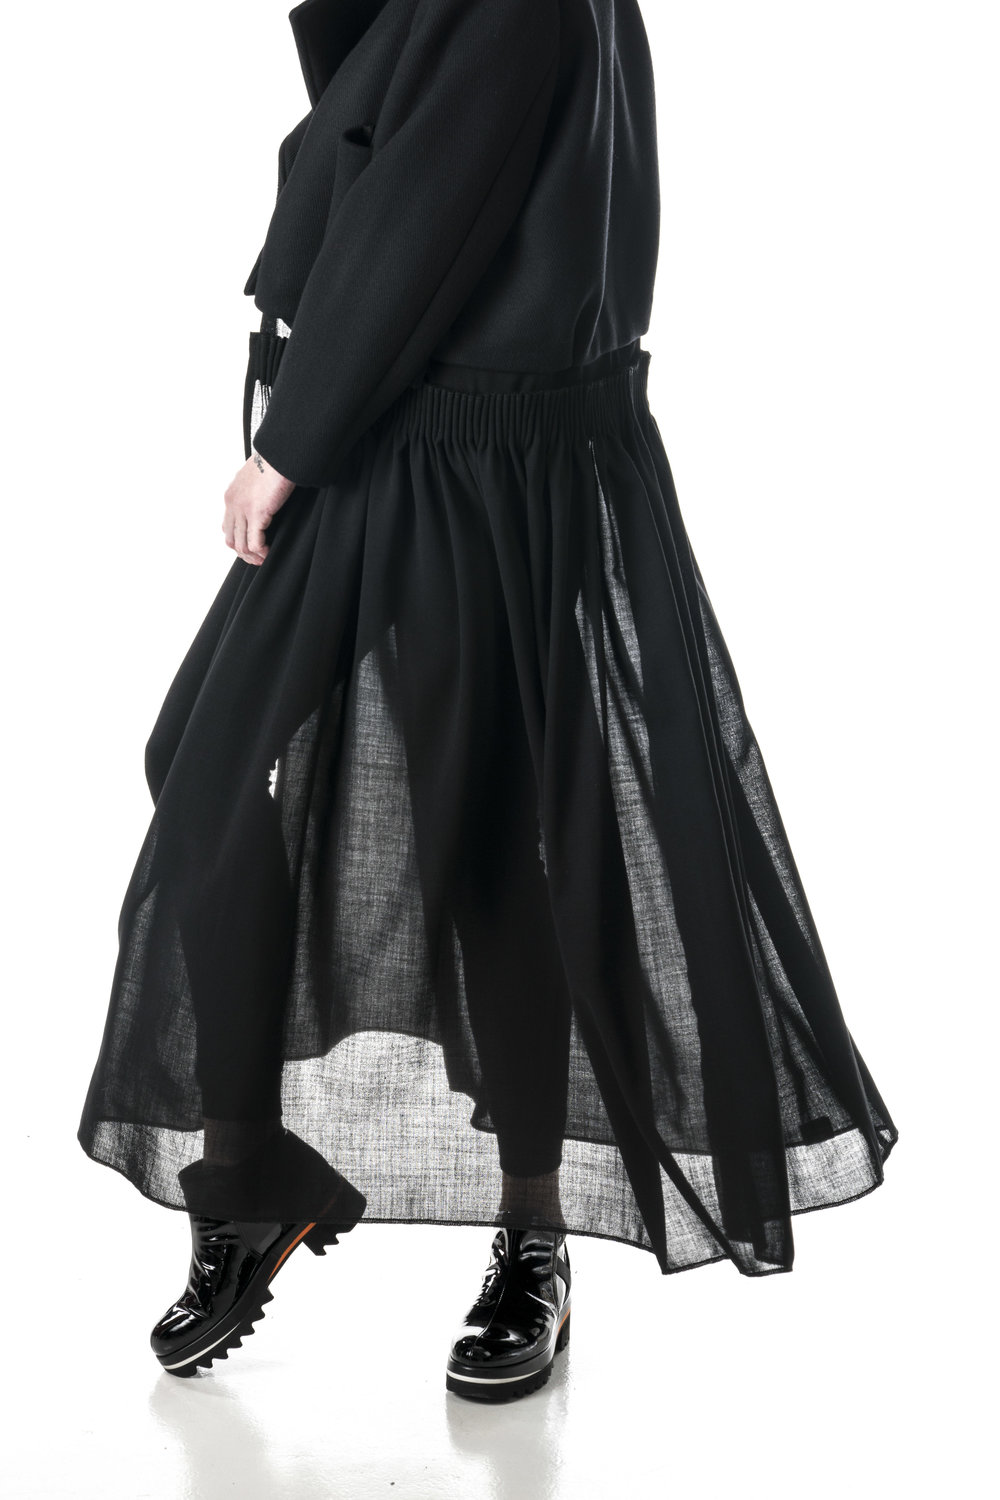 Jacket with removable skirt. Jacket in 800 gr wool, skirt in thin virgin wool. Folding/piping technique on skirt is very common in bunad skirts.